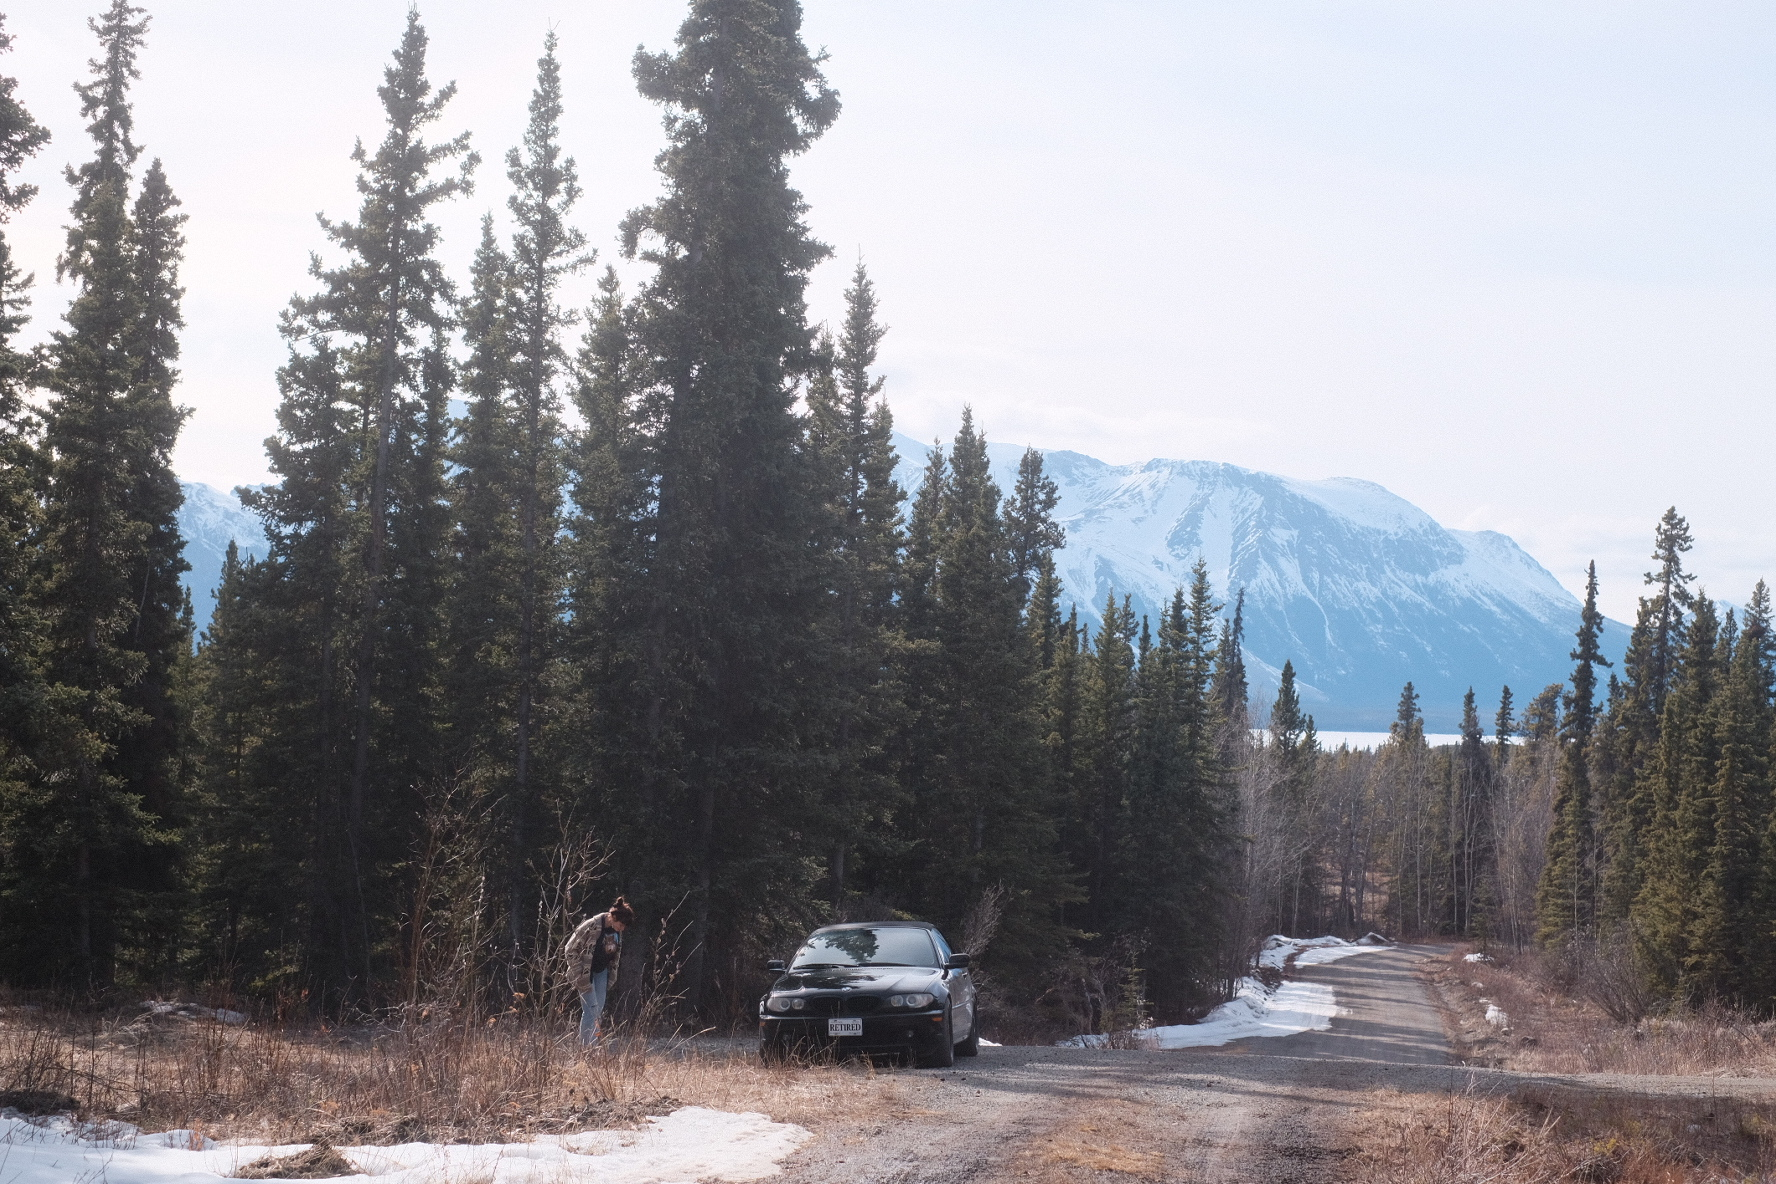 Off the beaten path with the E46